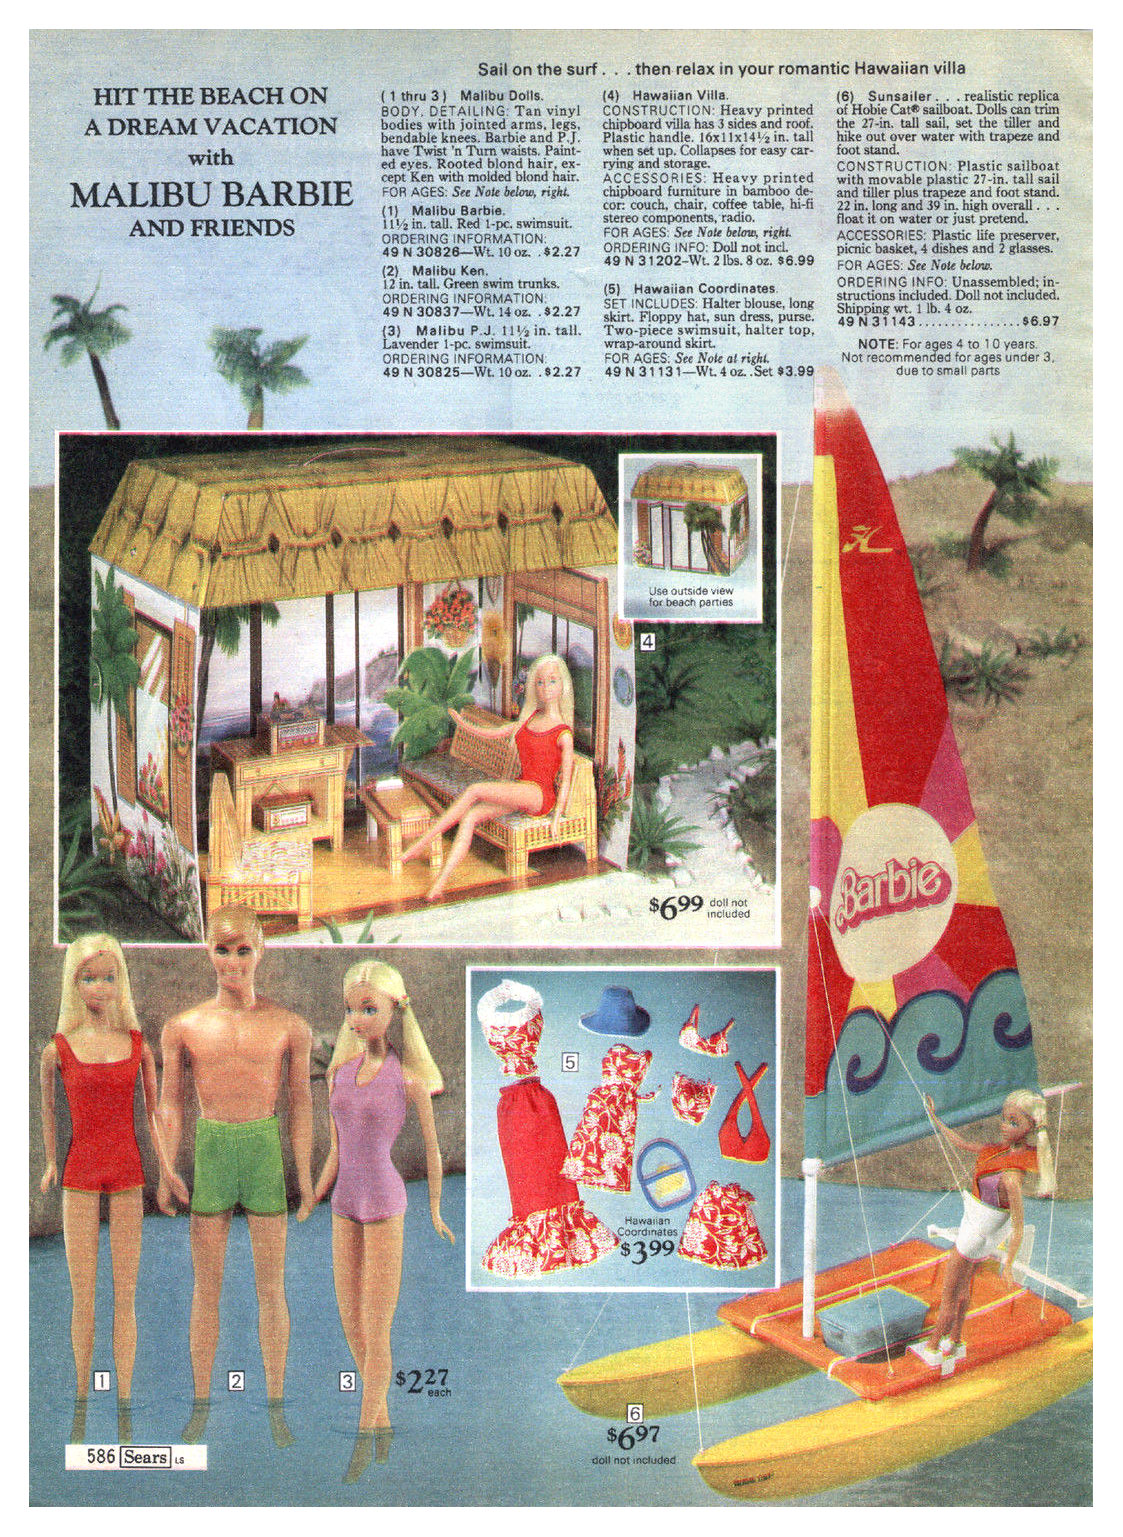 From 1976 Sears Wish Book